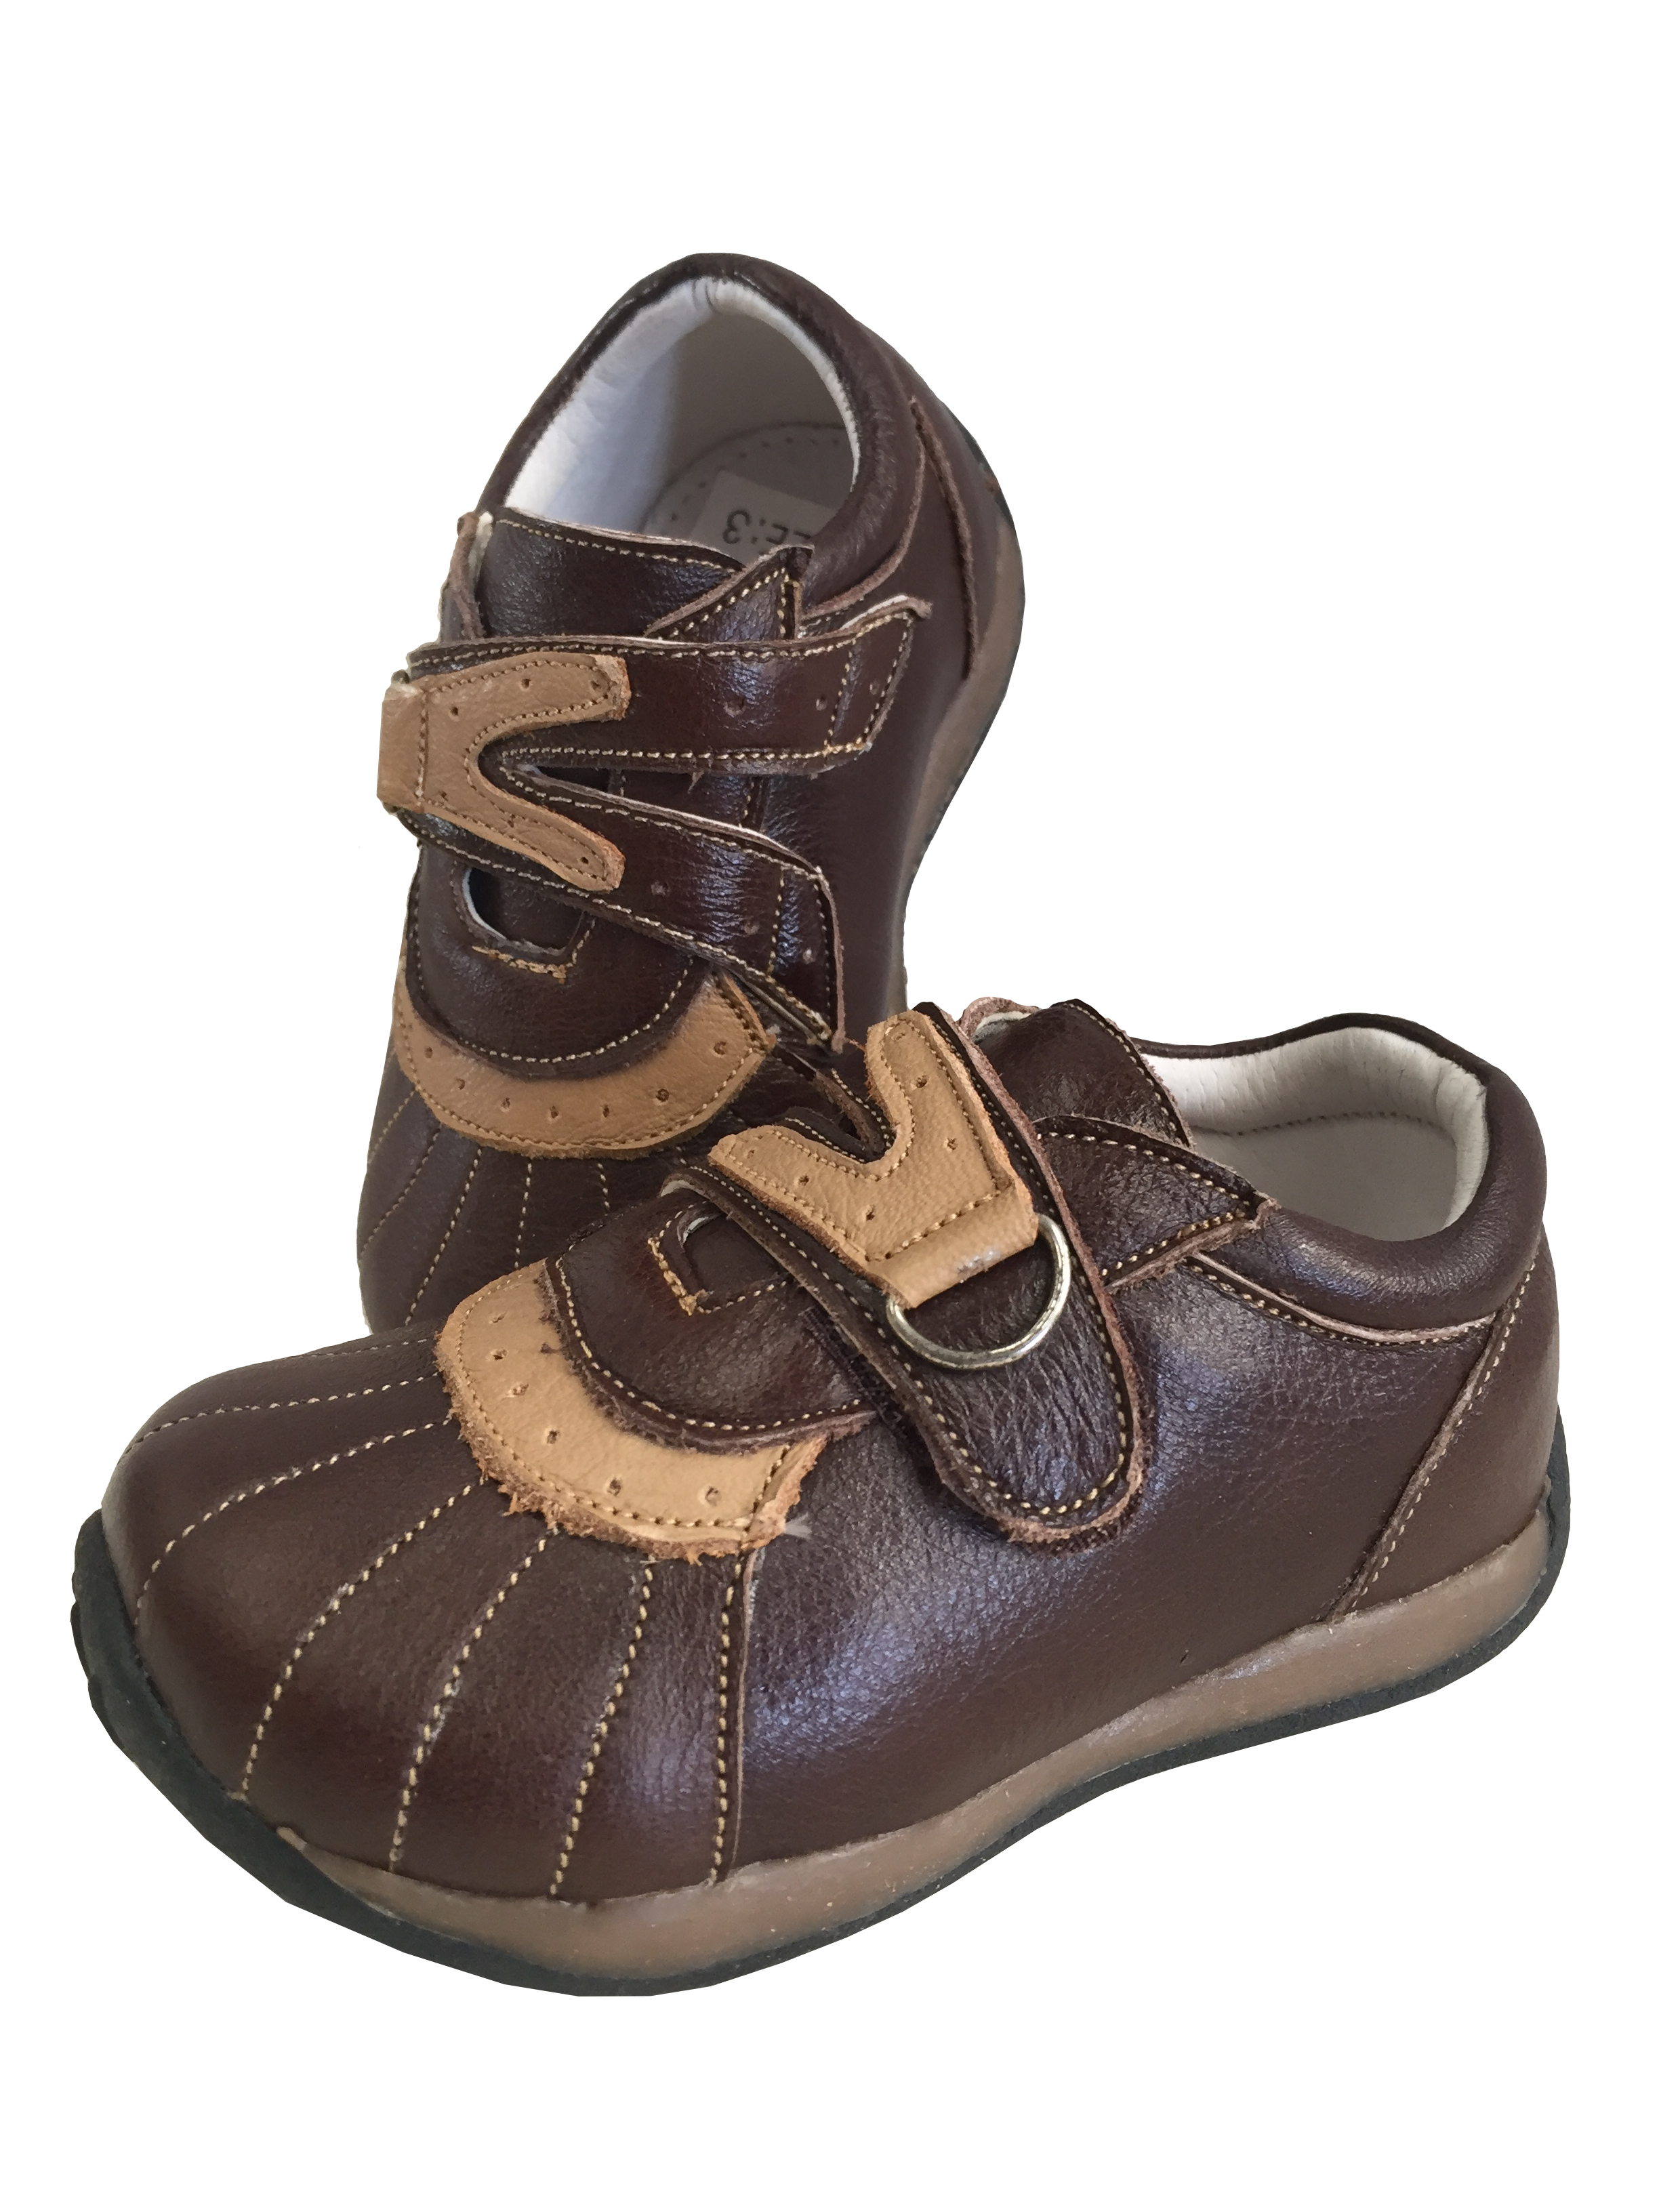 Baby Toddler Leather Shoes Sneakers Trainers 9207 Brown